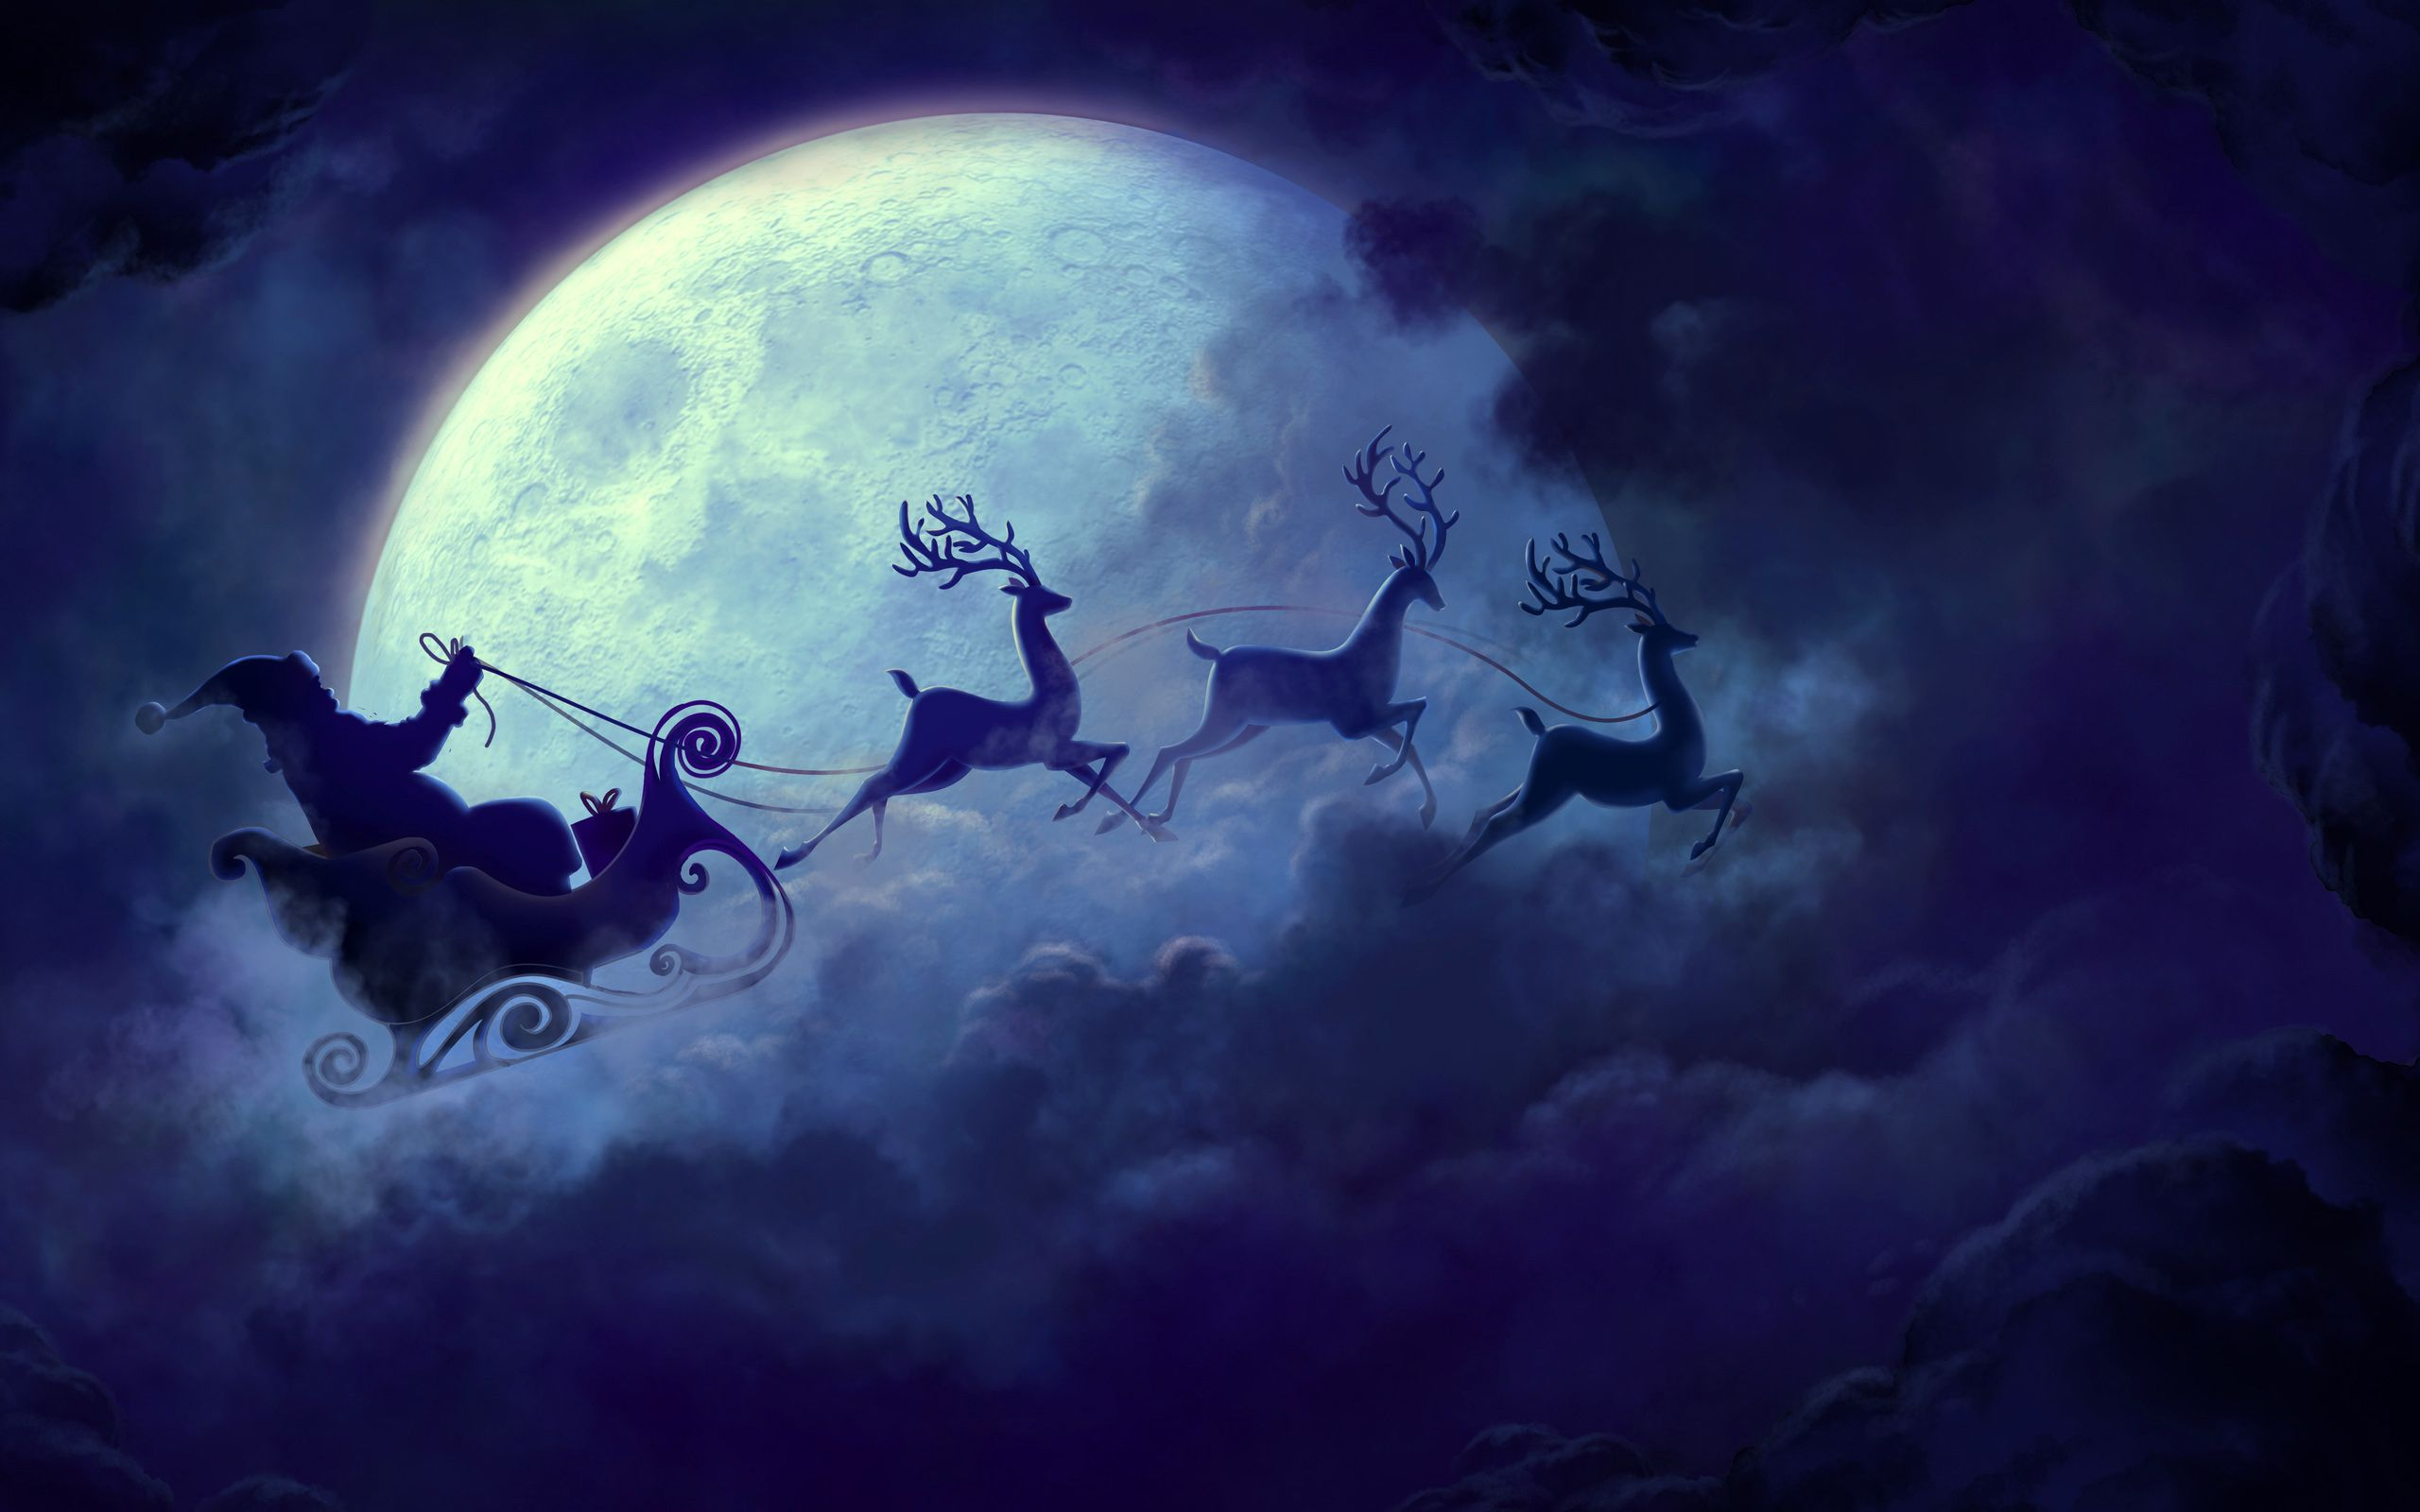 Christmas Santa Claus Riding Reindeer By The Moon Http Www Newiphonewallpapers Net Santa Claus Wallpaper Christmas Wallpaper Backgrounds Christmas Pictures